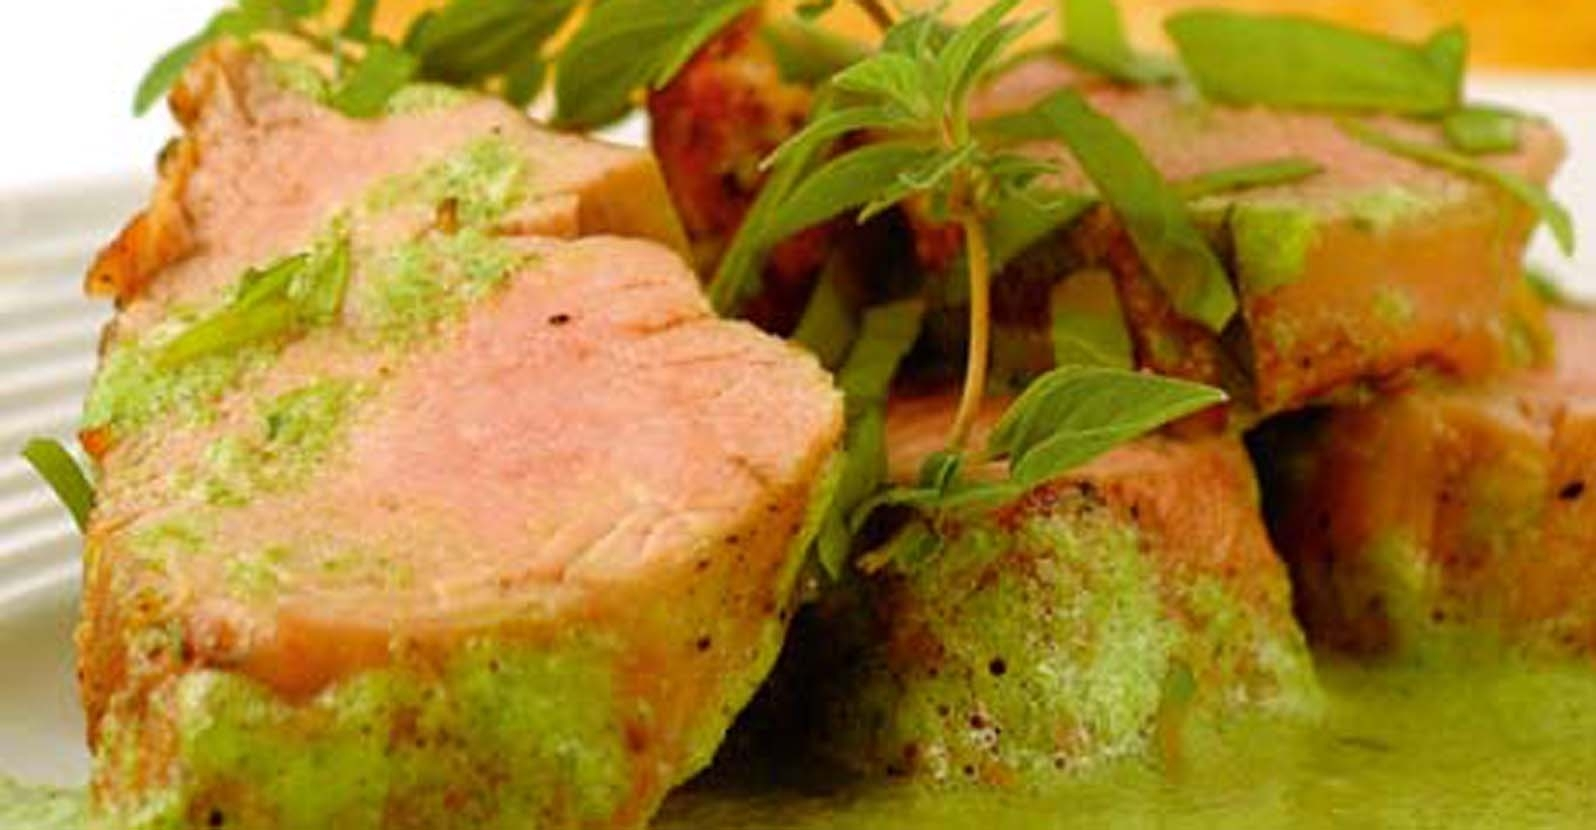 Parsley Cilantro Marinade